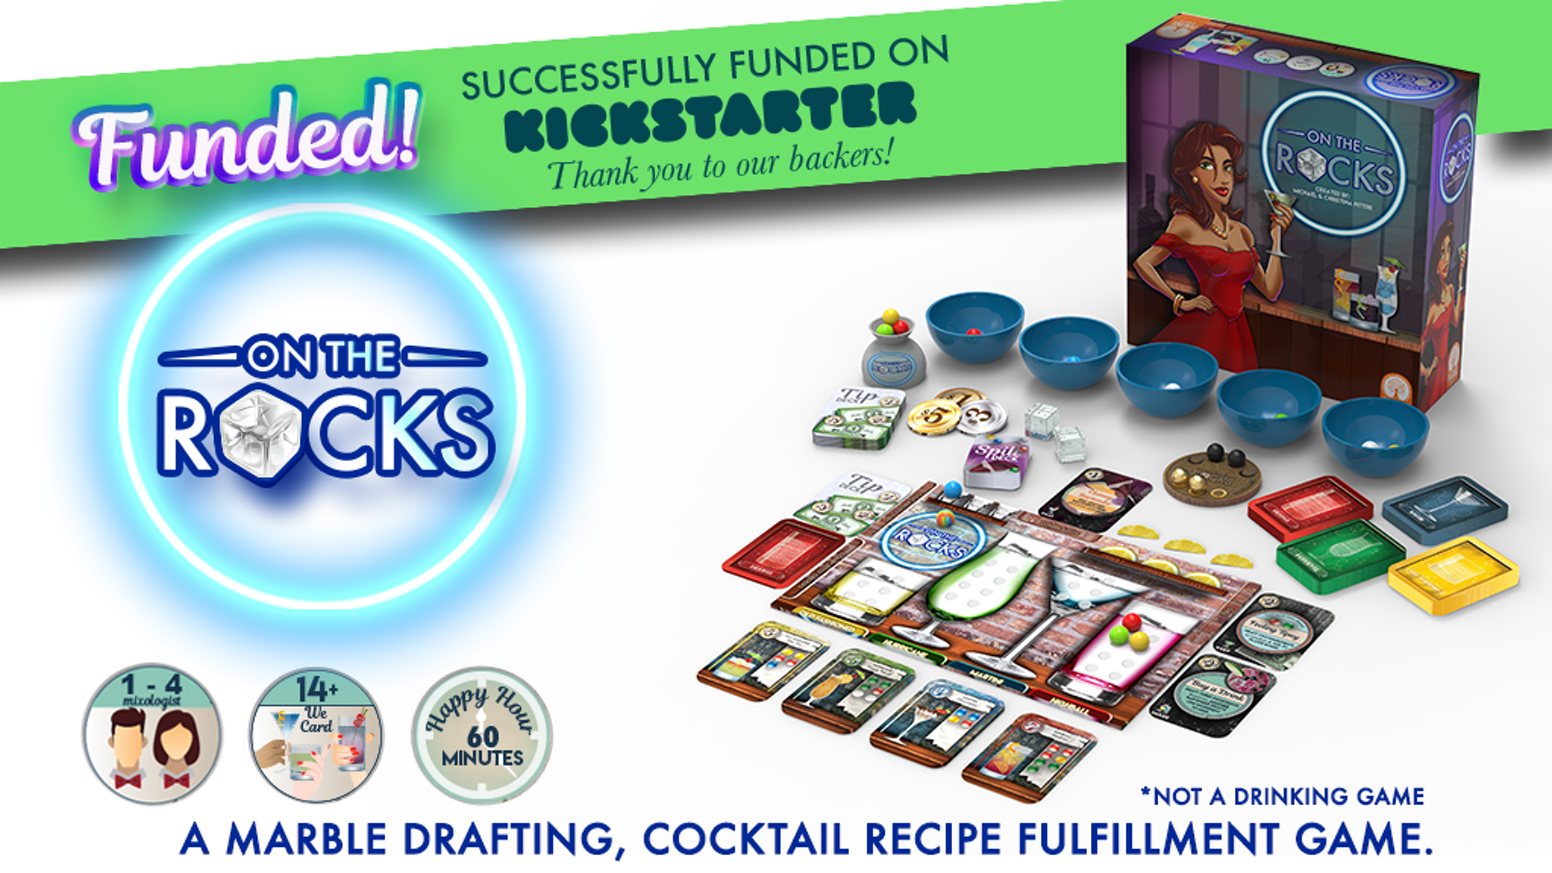 On The Rocks: A marble drafting cocktail recipe fulfillment game